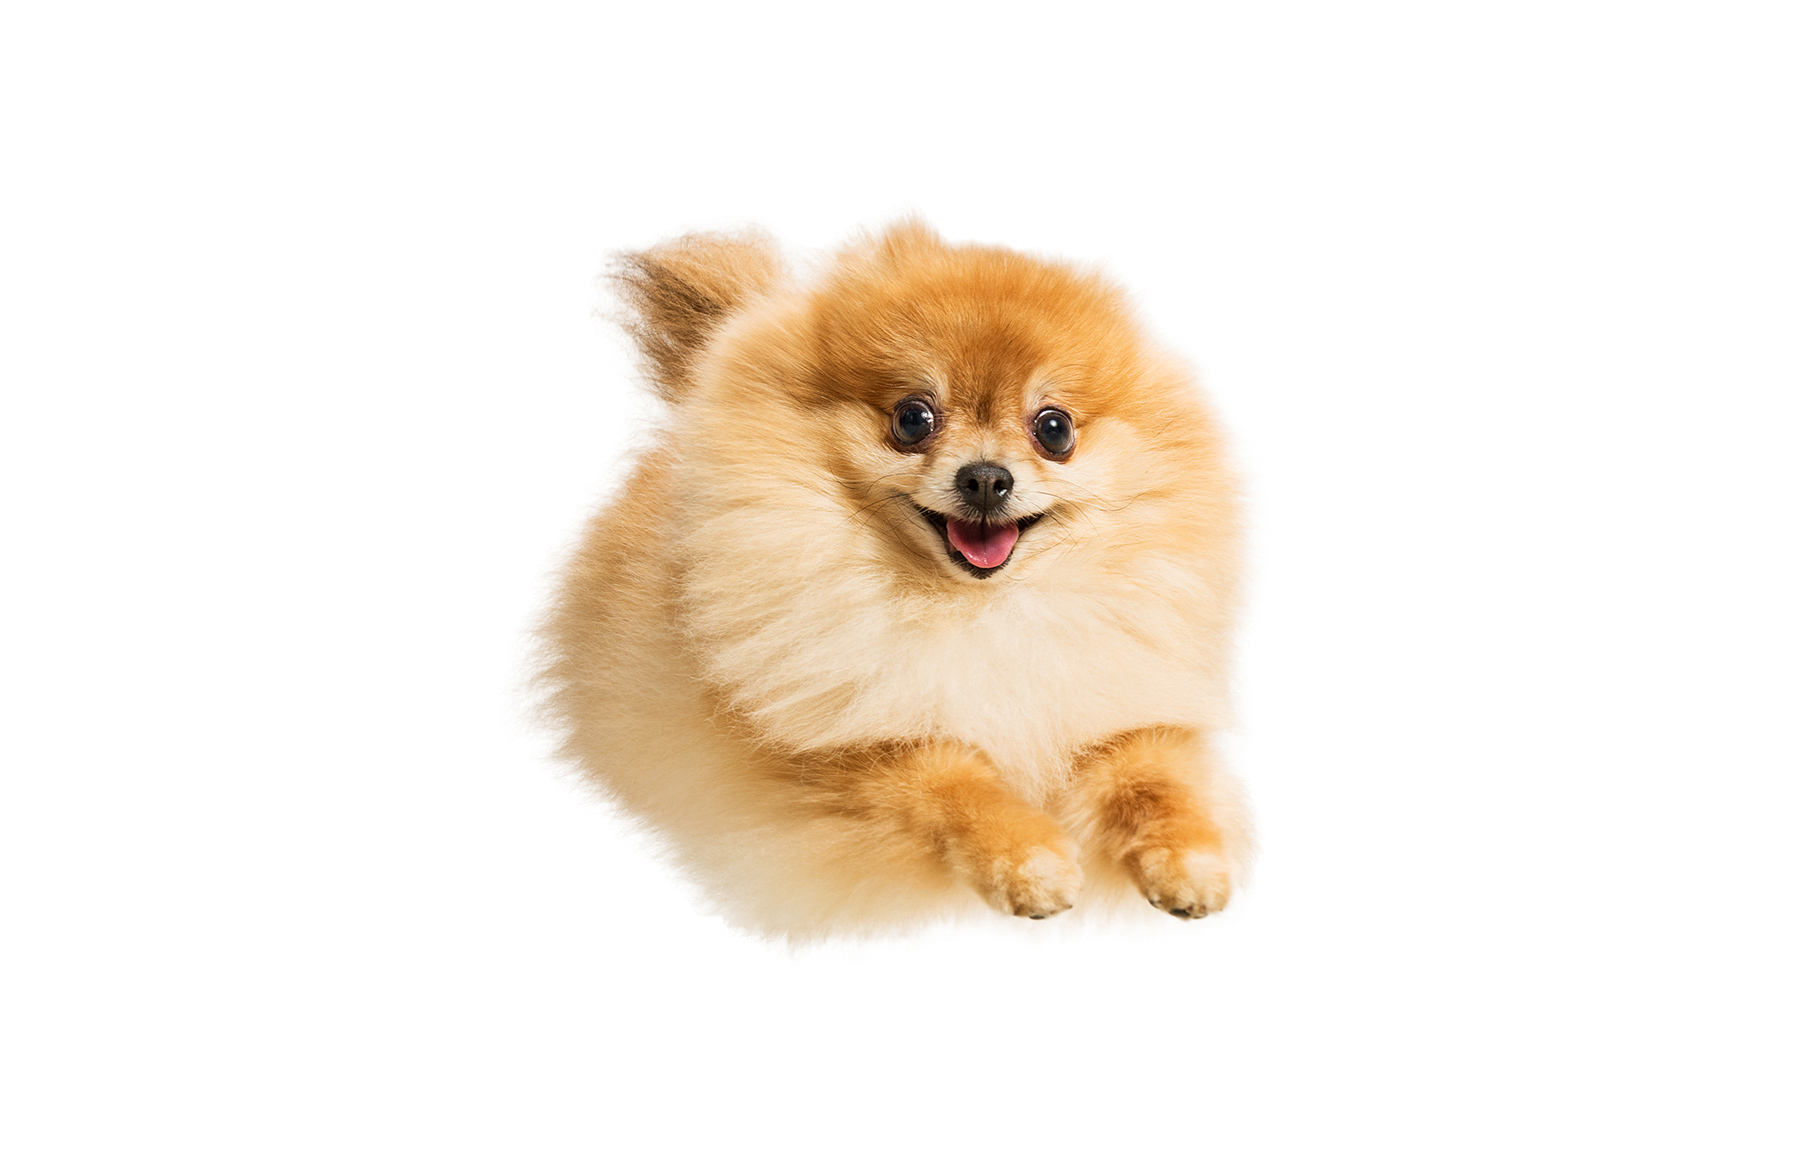 A-studio-portrait-of-a-happy-Pomeranian-leaping-through-the-air-against-a-white-background